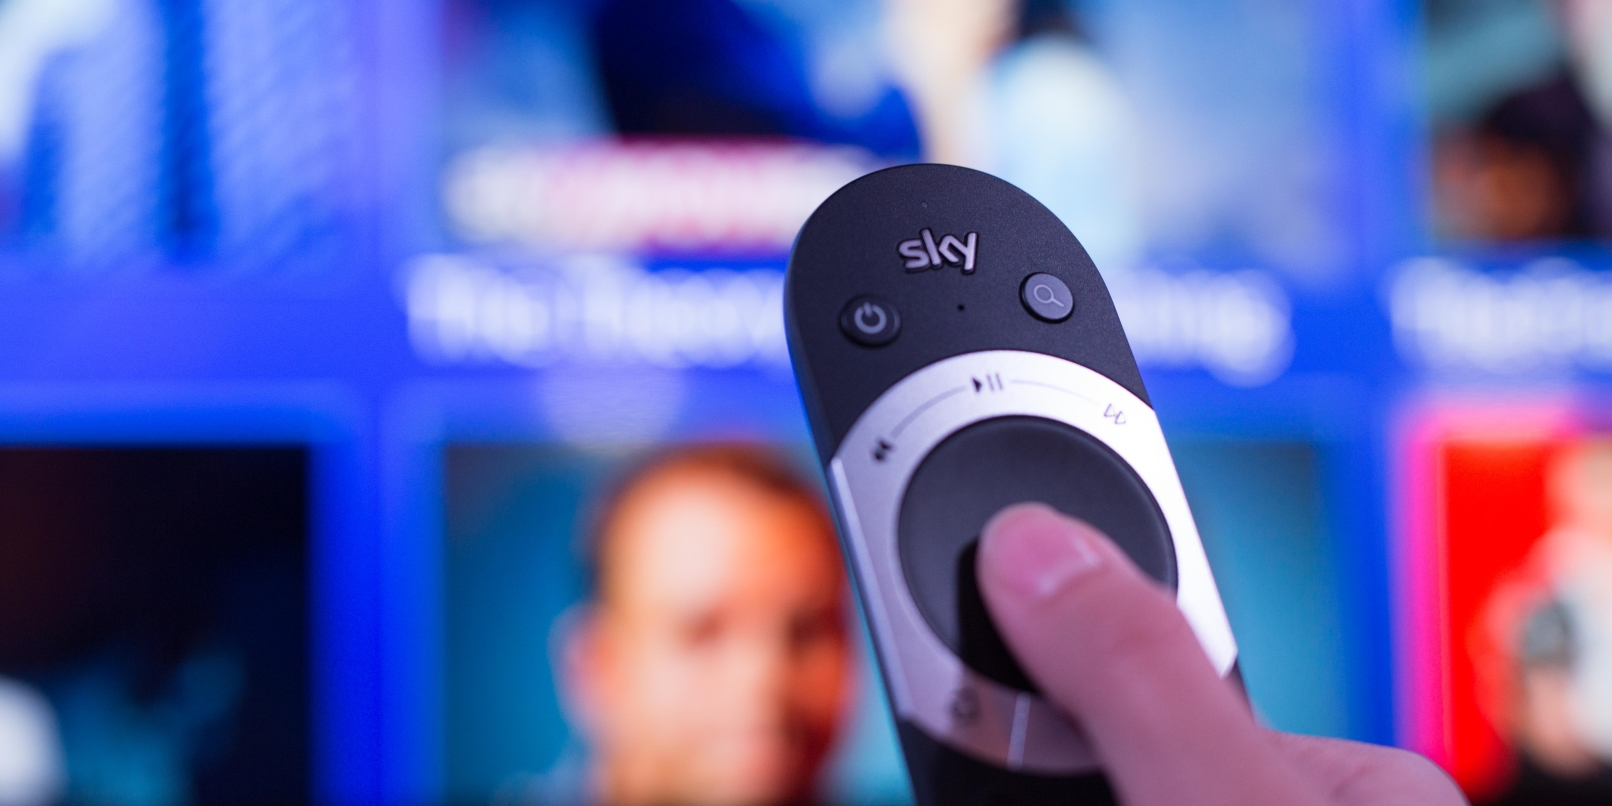 Sky Q will make you want to ditch your Sky+ box